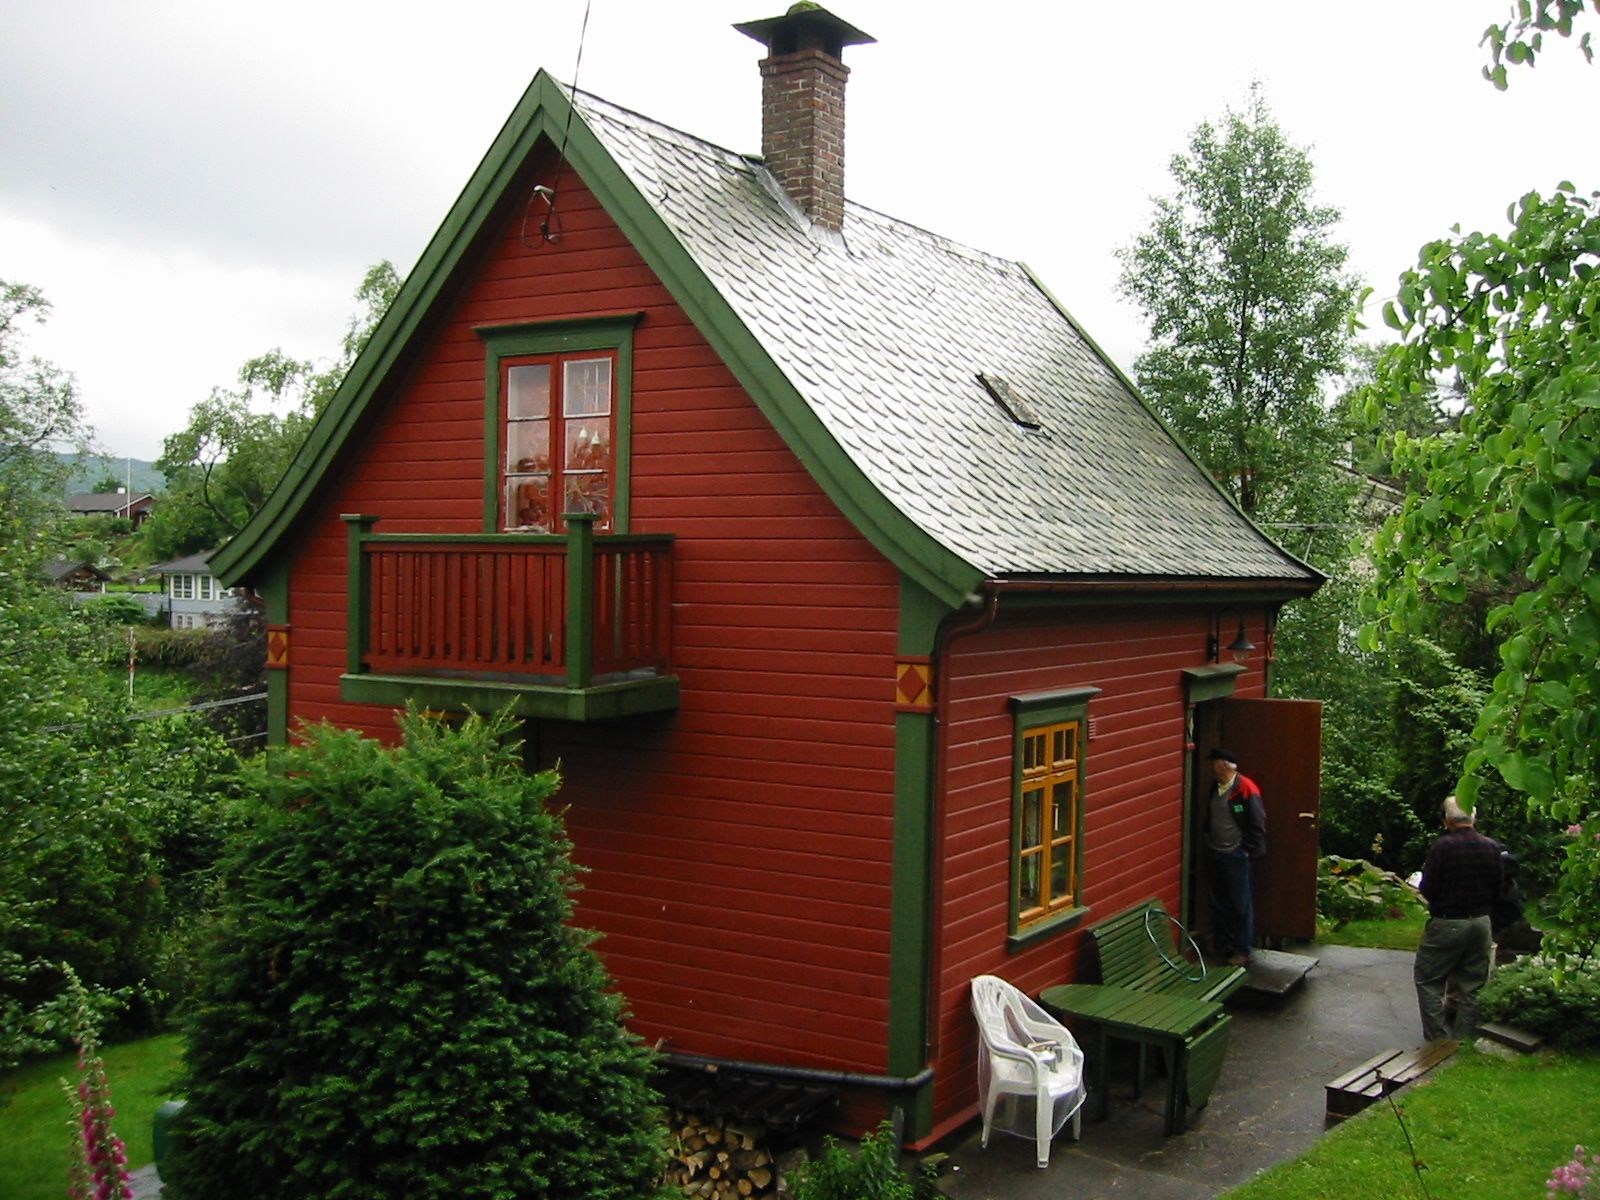 Small Summer Cabin in Norway - http://www.tinyhouseliving.com ...